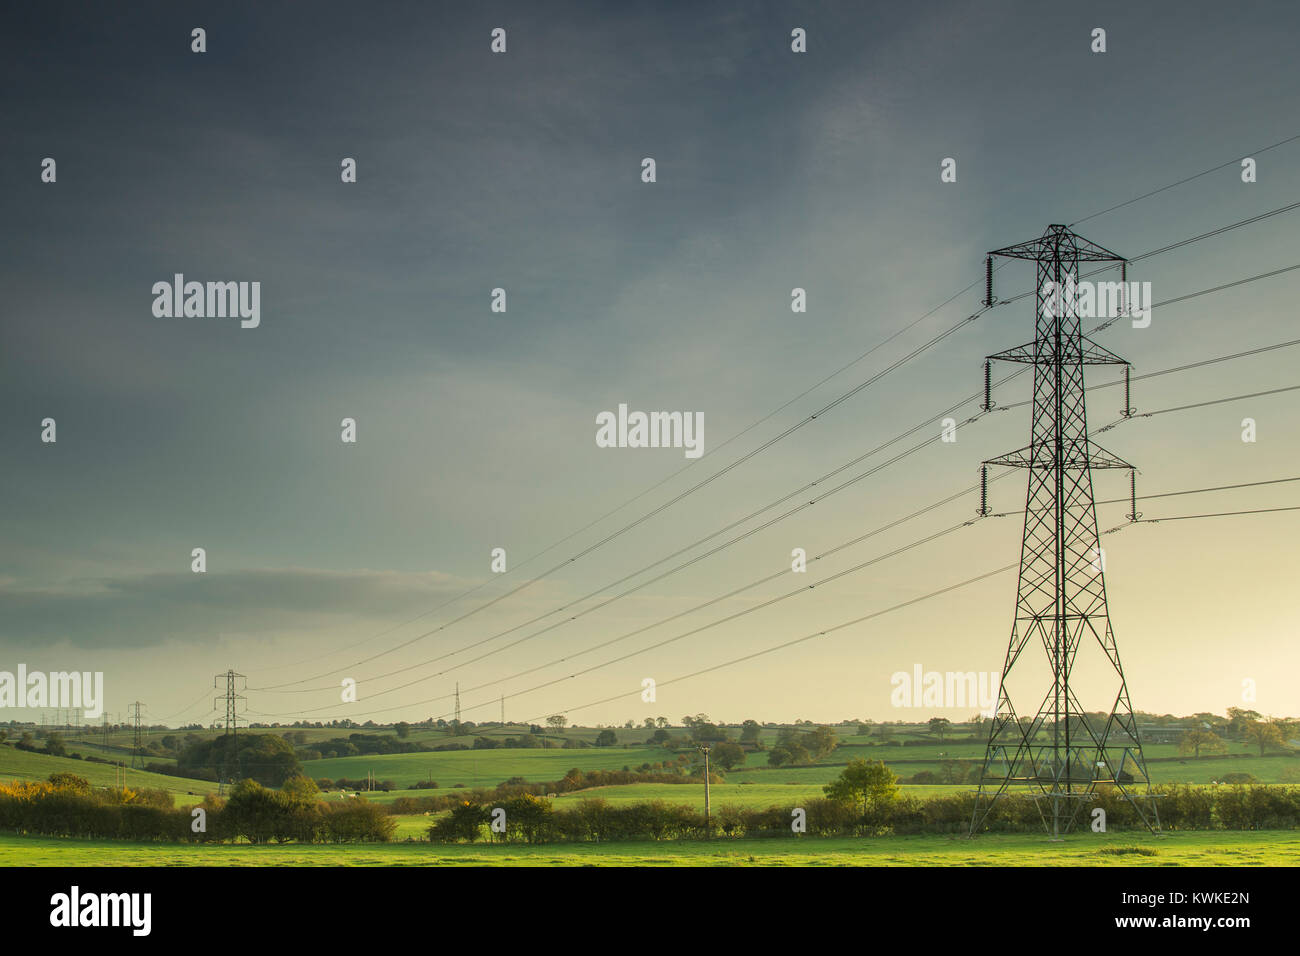 Electricity lines carrying power across the countryside of England as the evening sun begins to set. - Stock Image